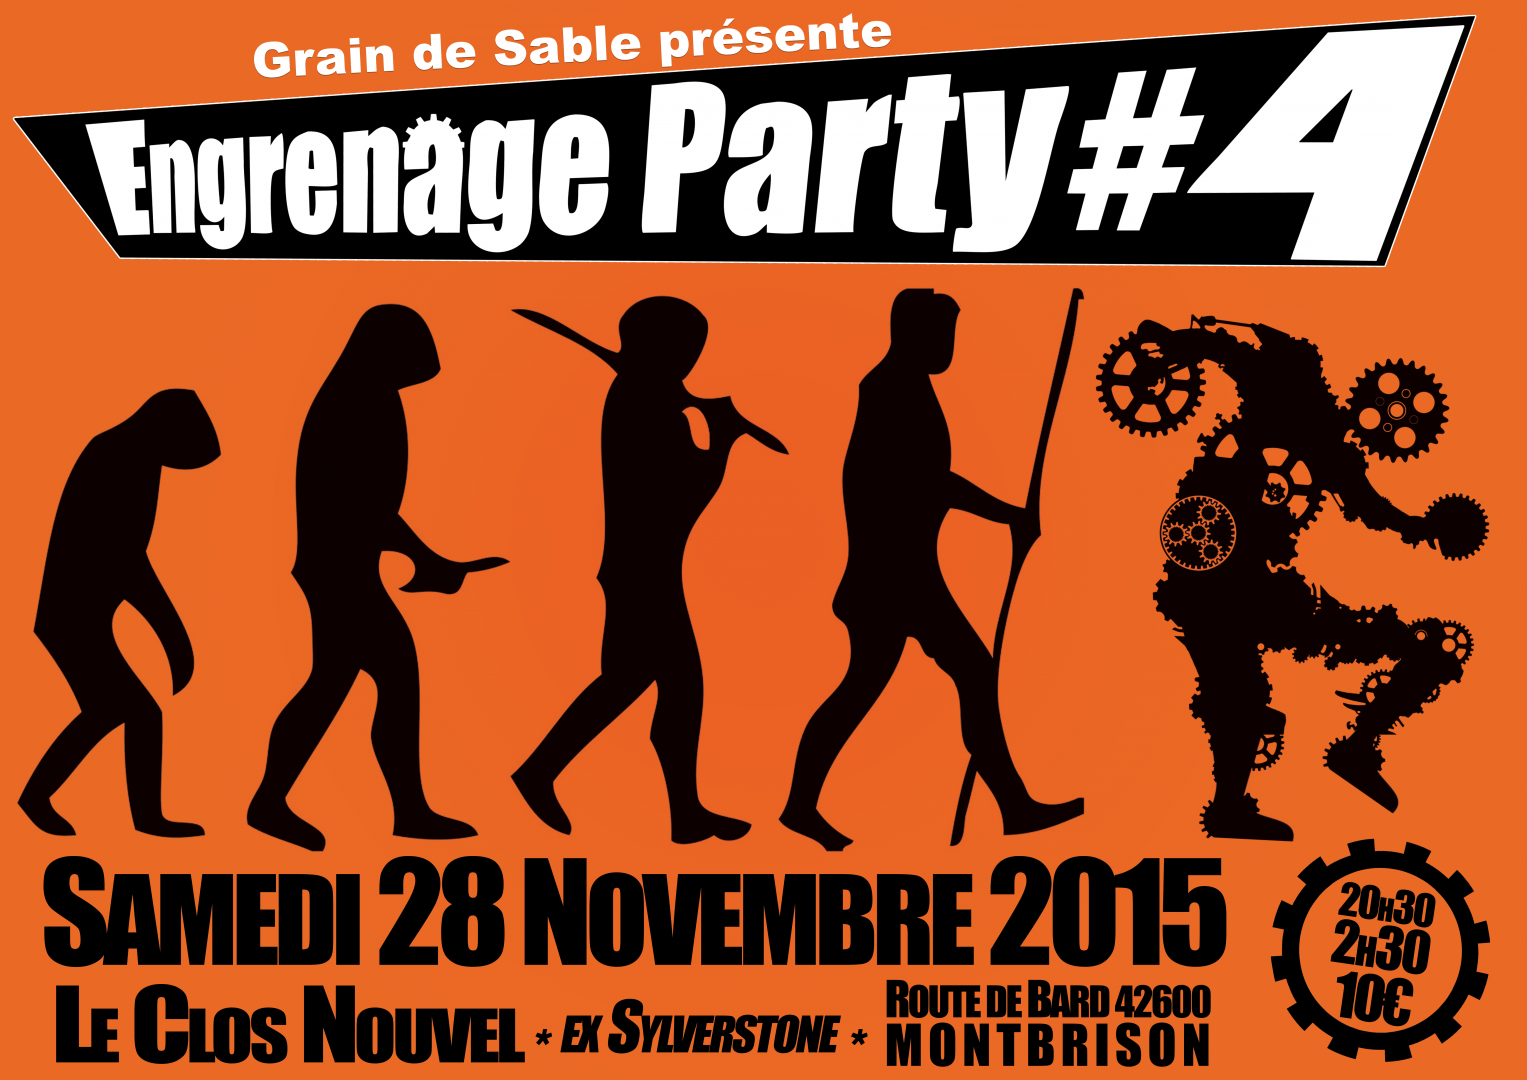 Engrenage Party, Grain de Sable